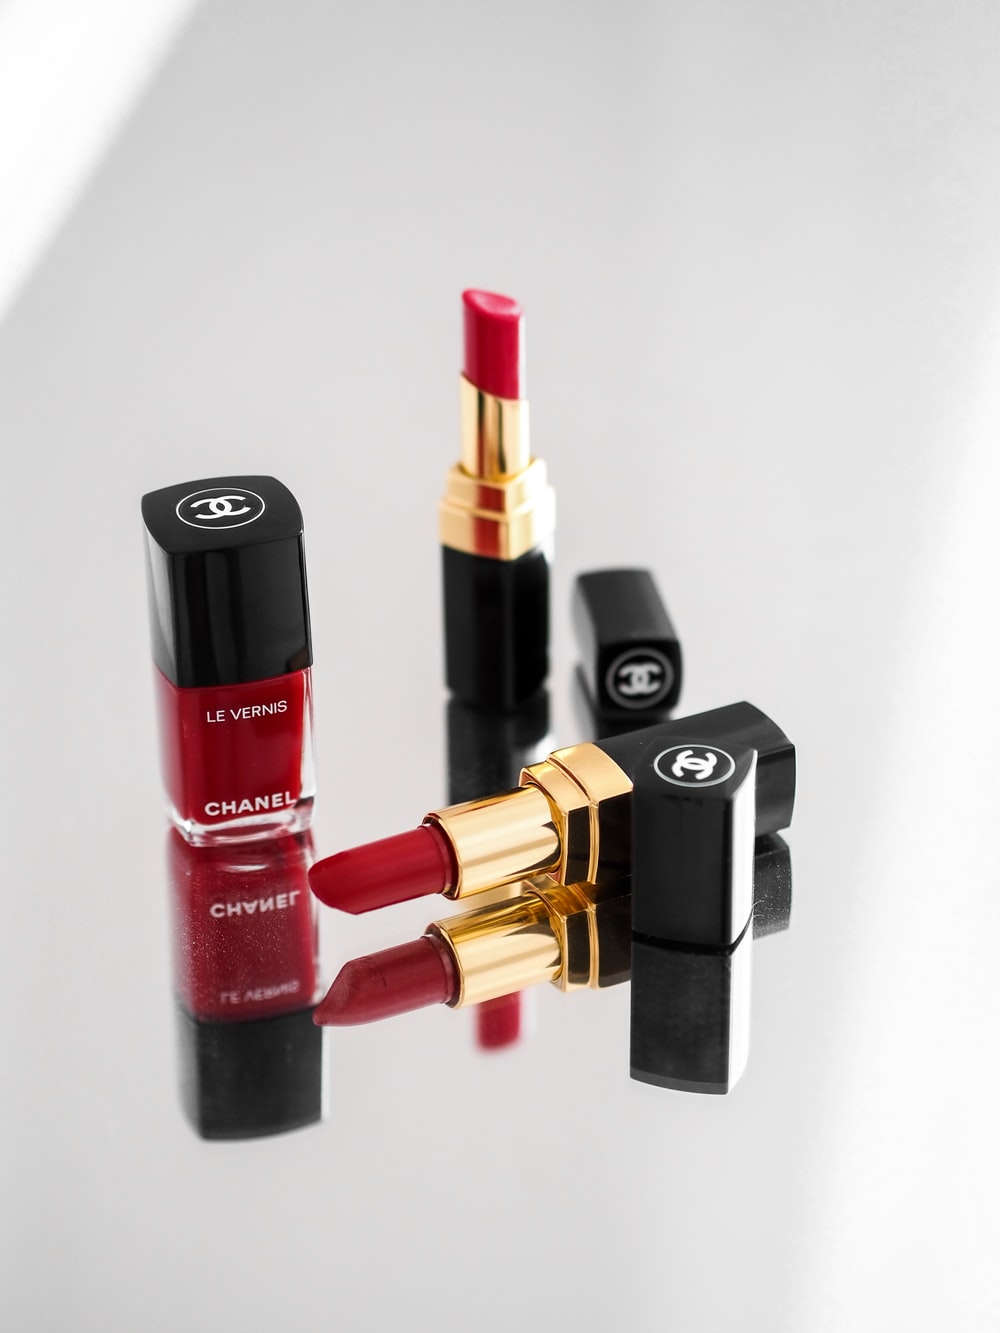 red and black lipstick beside red lipstick